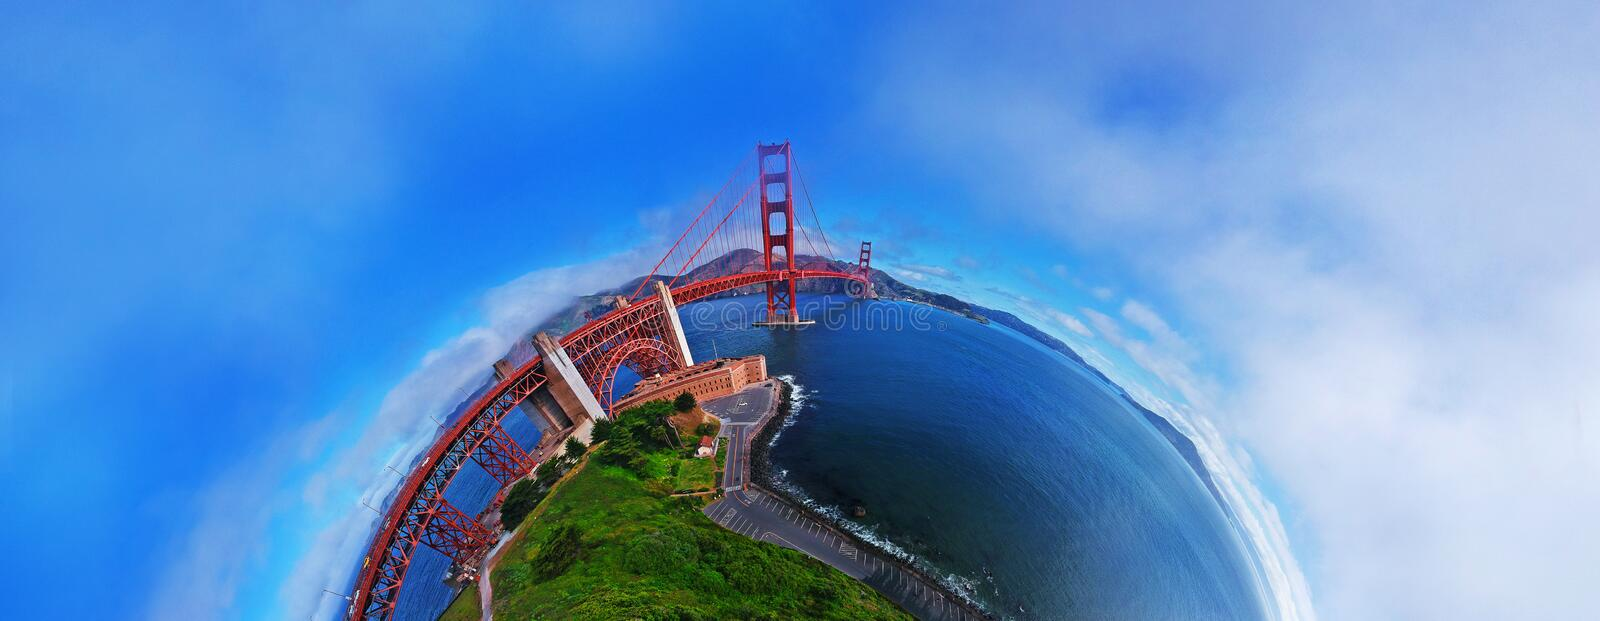 AERIAL VIEW OF GOLDEN GATE BRIDGE IN SAN FRANCISCO, CALIFORNIA. DRONE SHOT, PLANET PANORAMA 180 DEGREES. PACIFIC OCEAN royalty free stock photography